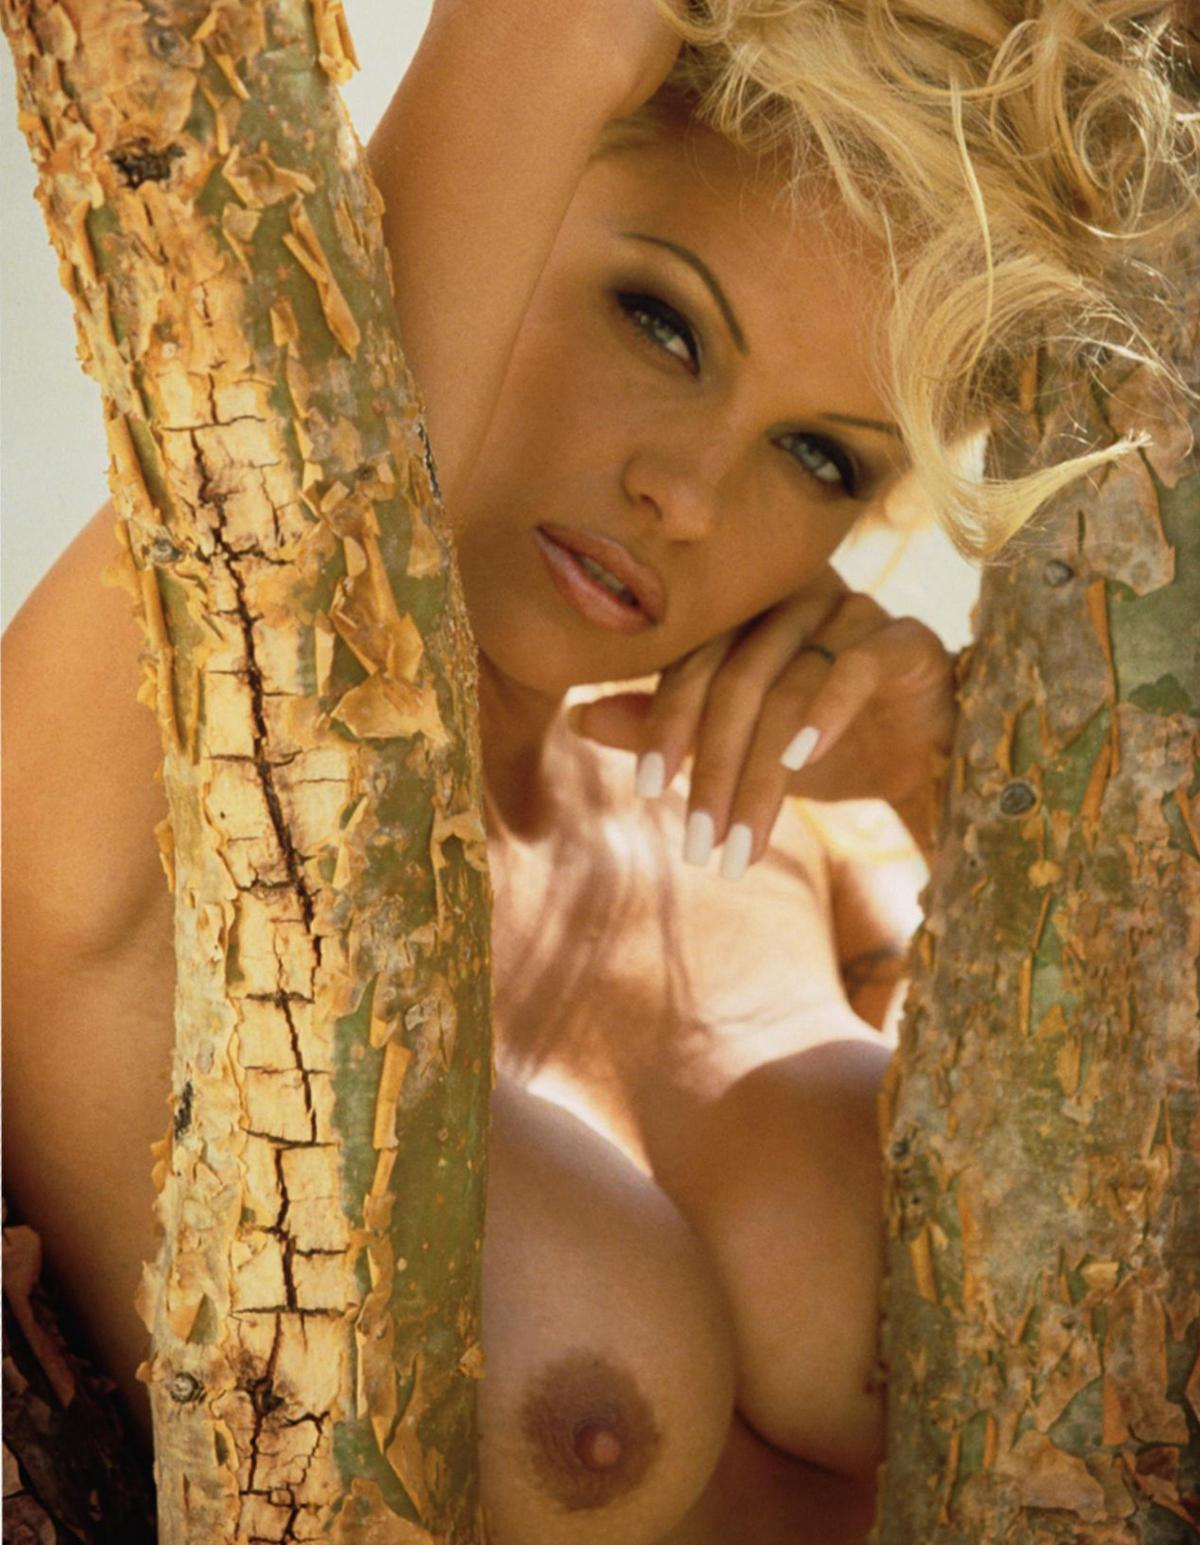 Pamela anderson nude january 2011 pictures